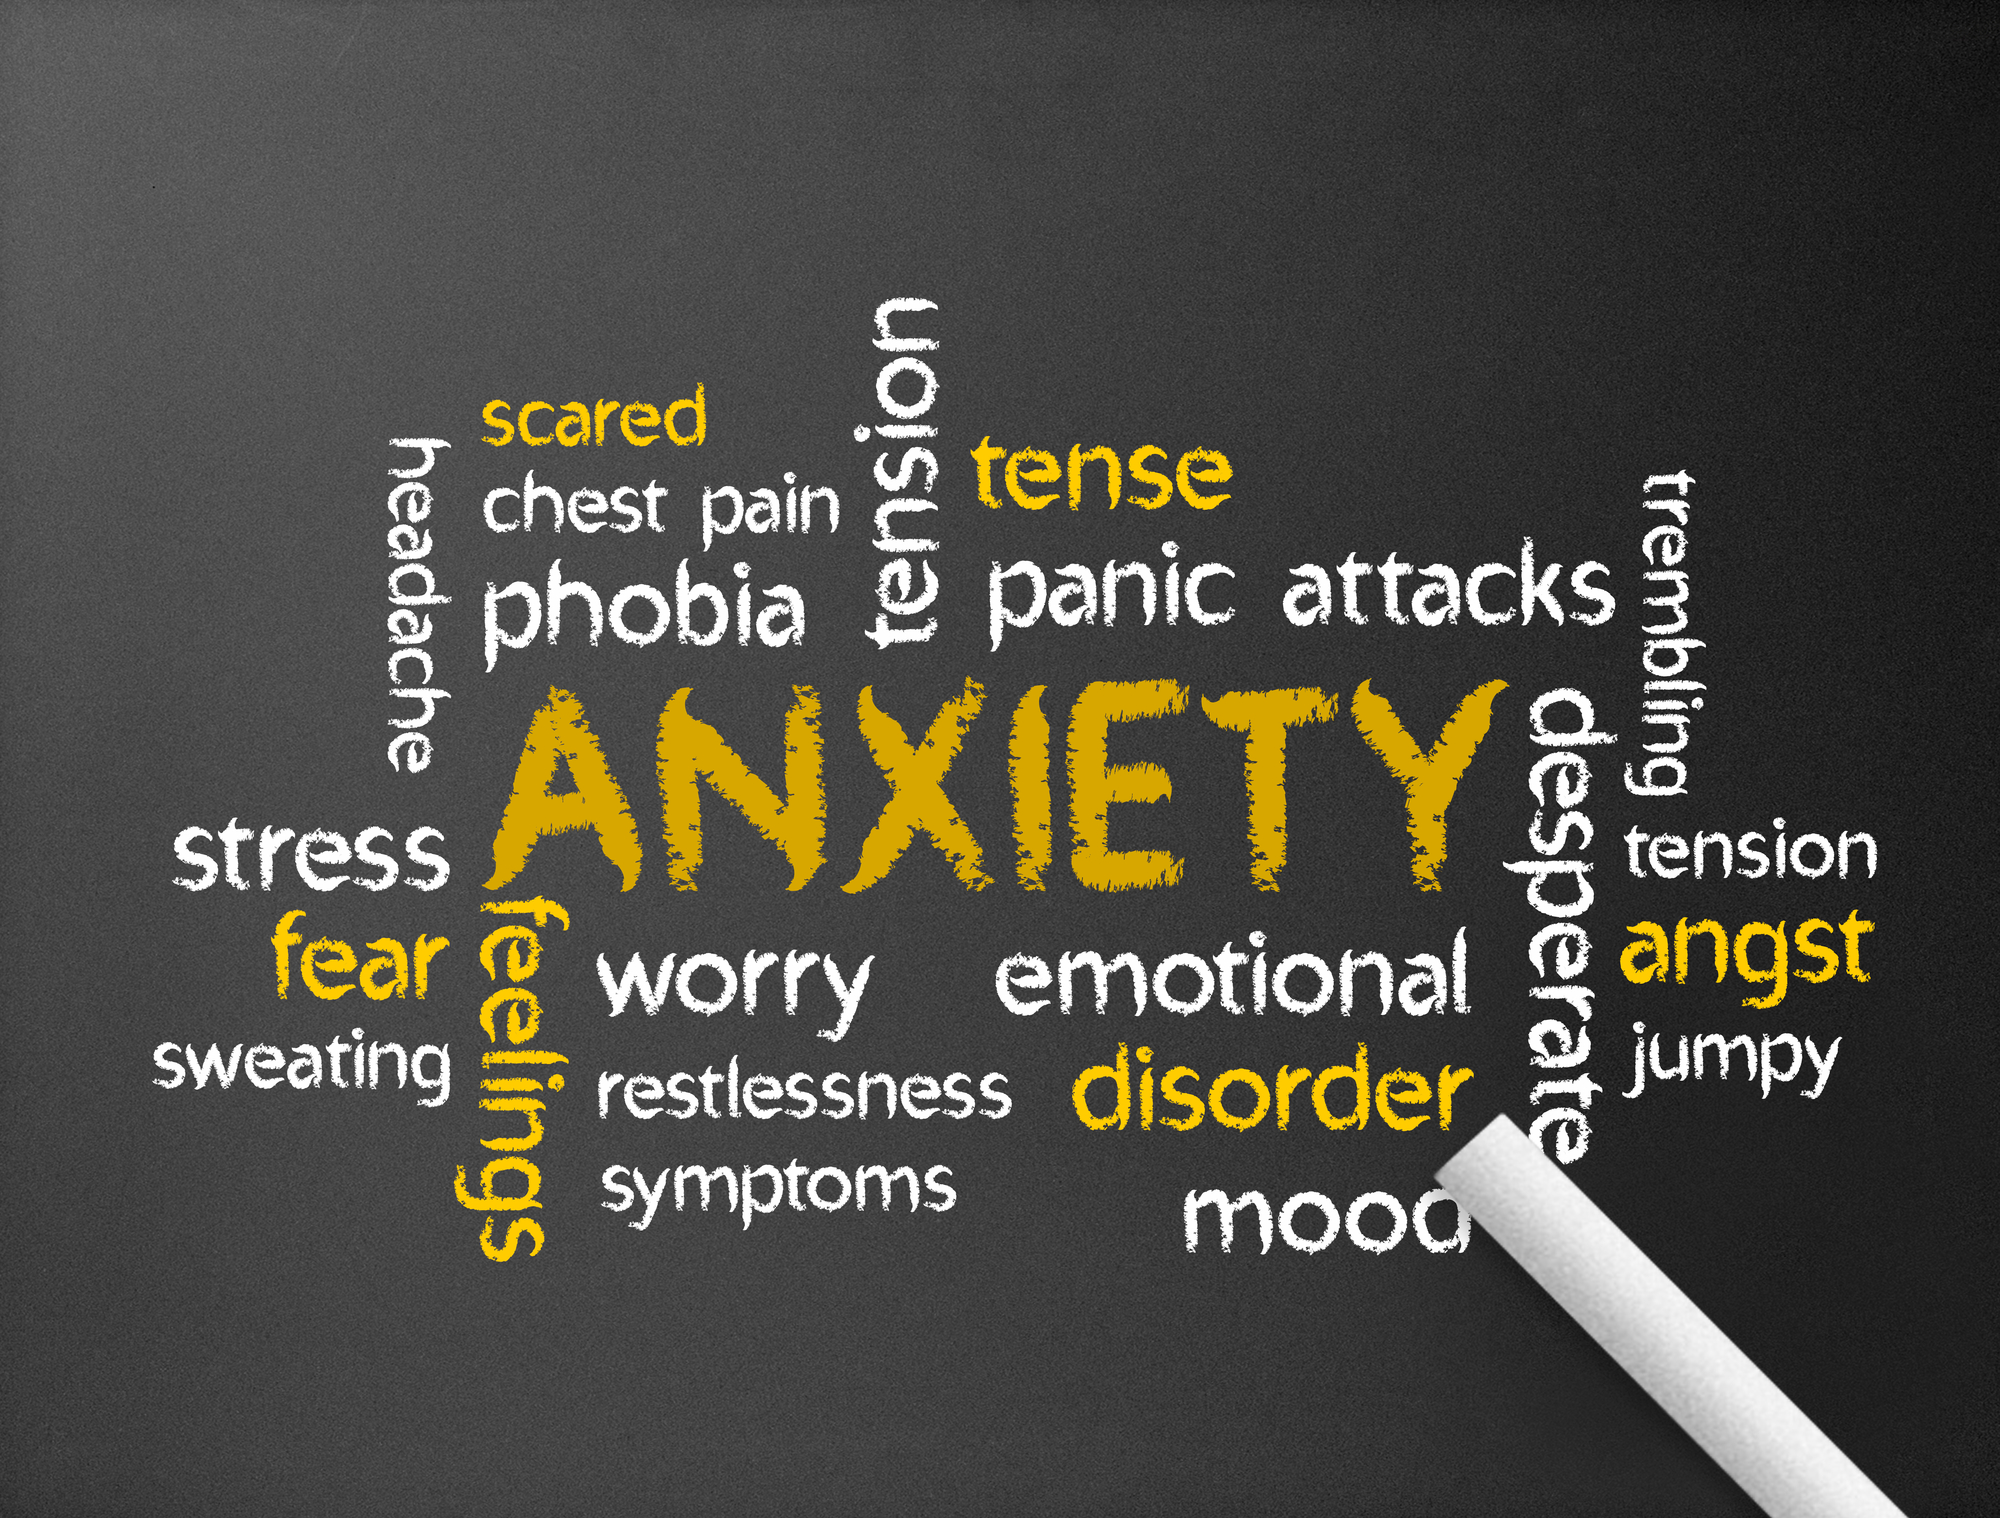 Anxiety Attacks & Disorders │ Symptoms & Treatment